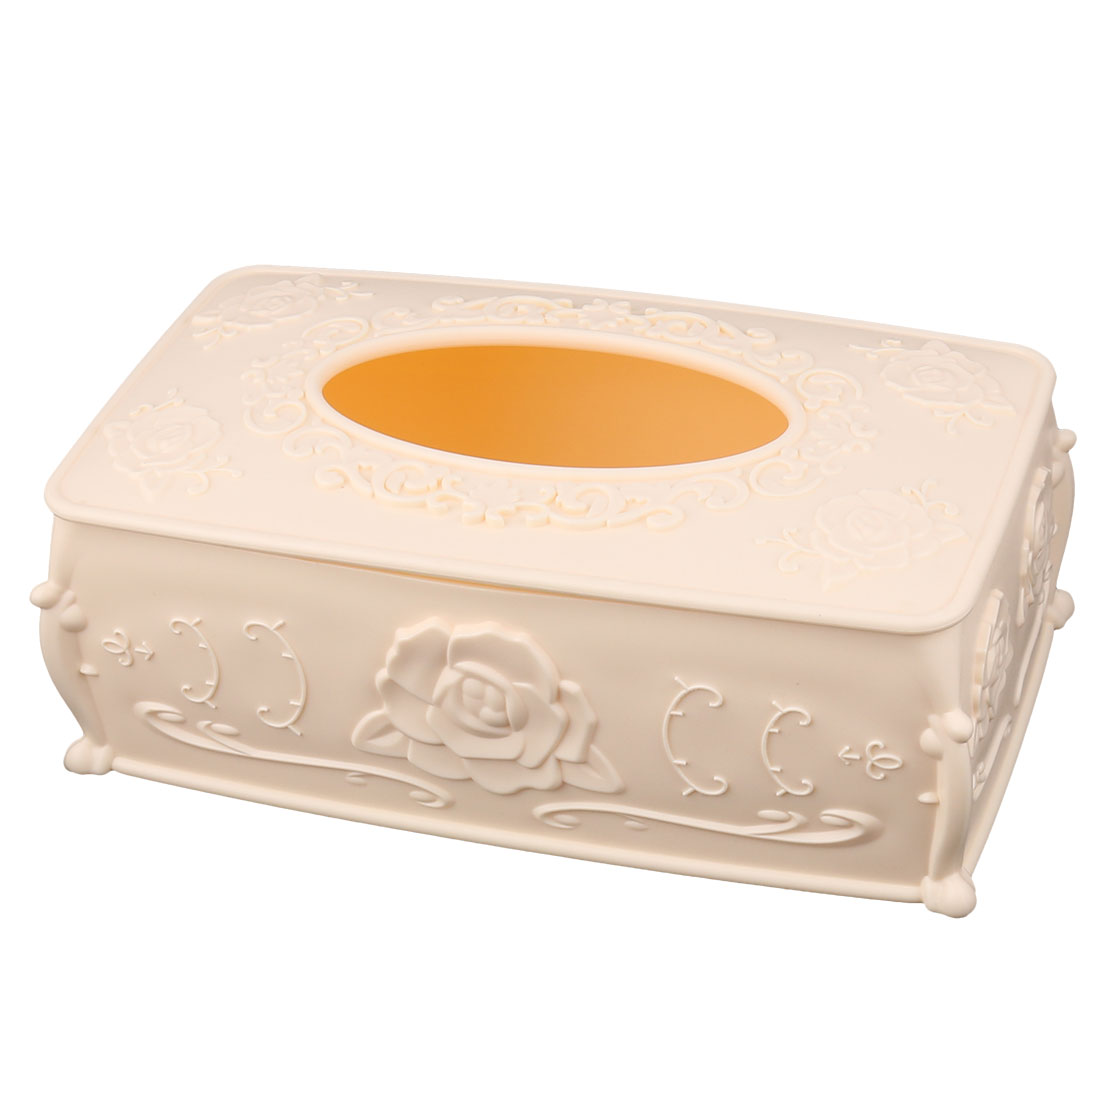 Parlour Bar Flower Carven Plastic Paper Tissue Box Case Holder Organizer Beige